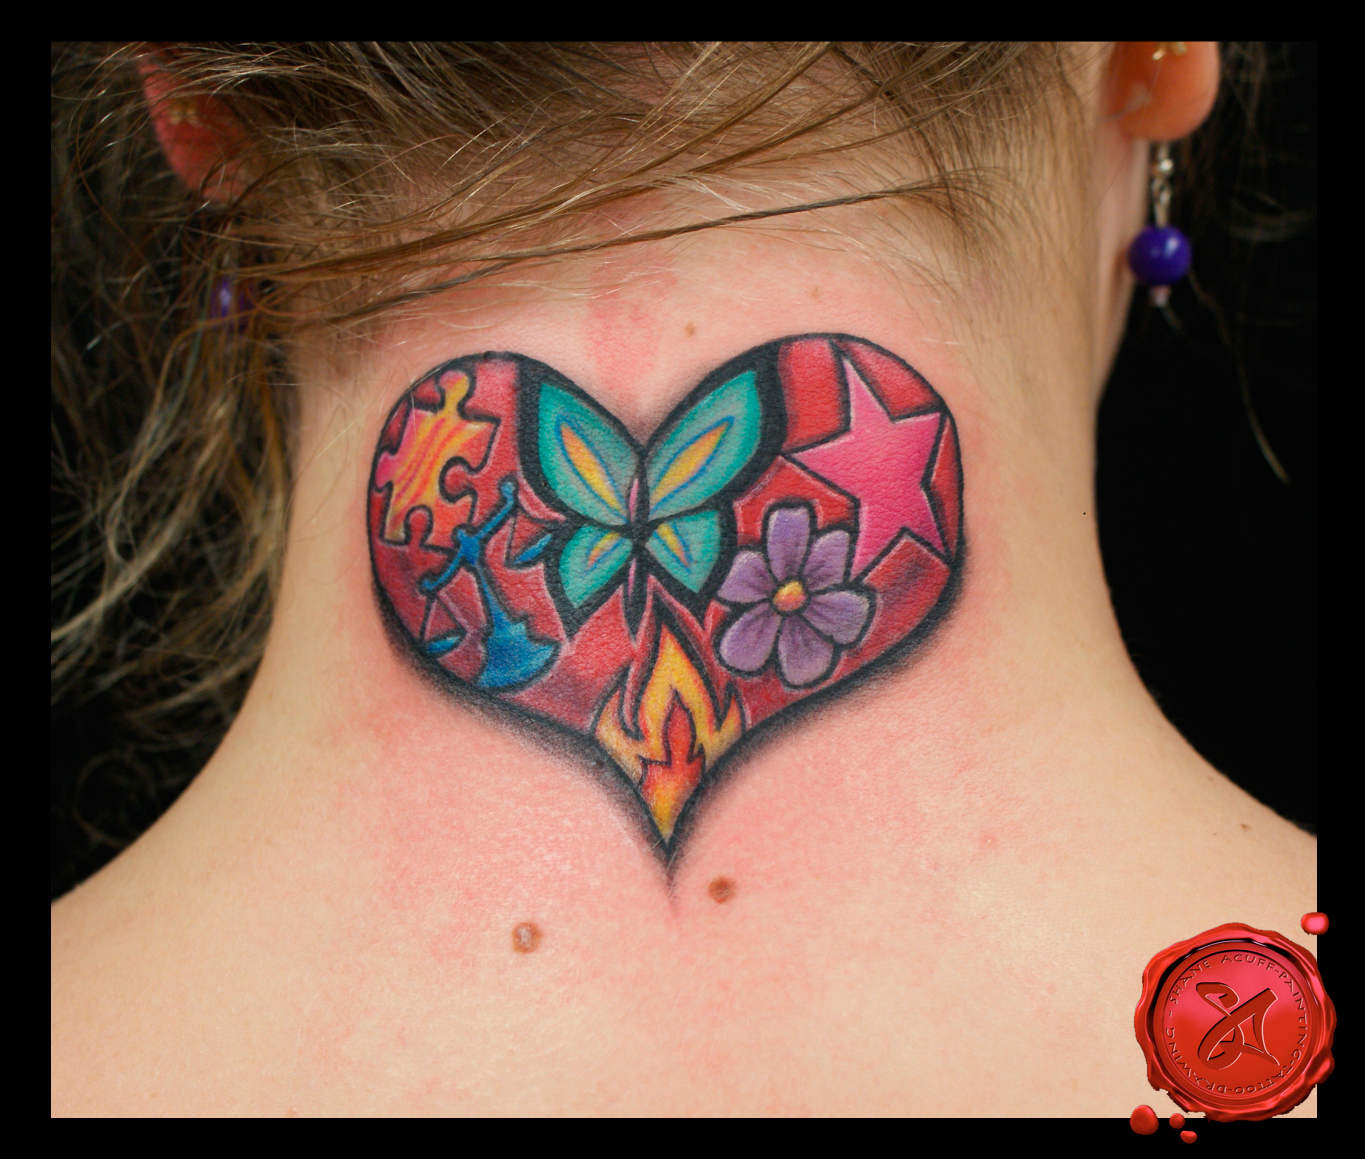 Butterfly star tattoo designs -  Butterfly Stars Tattoo On Back Shoulder